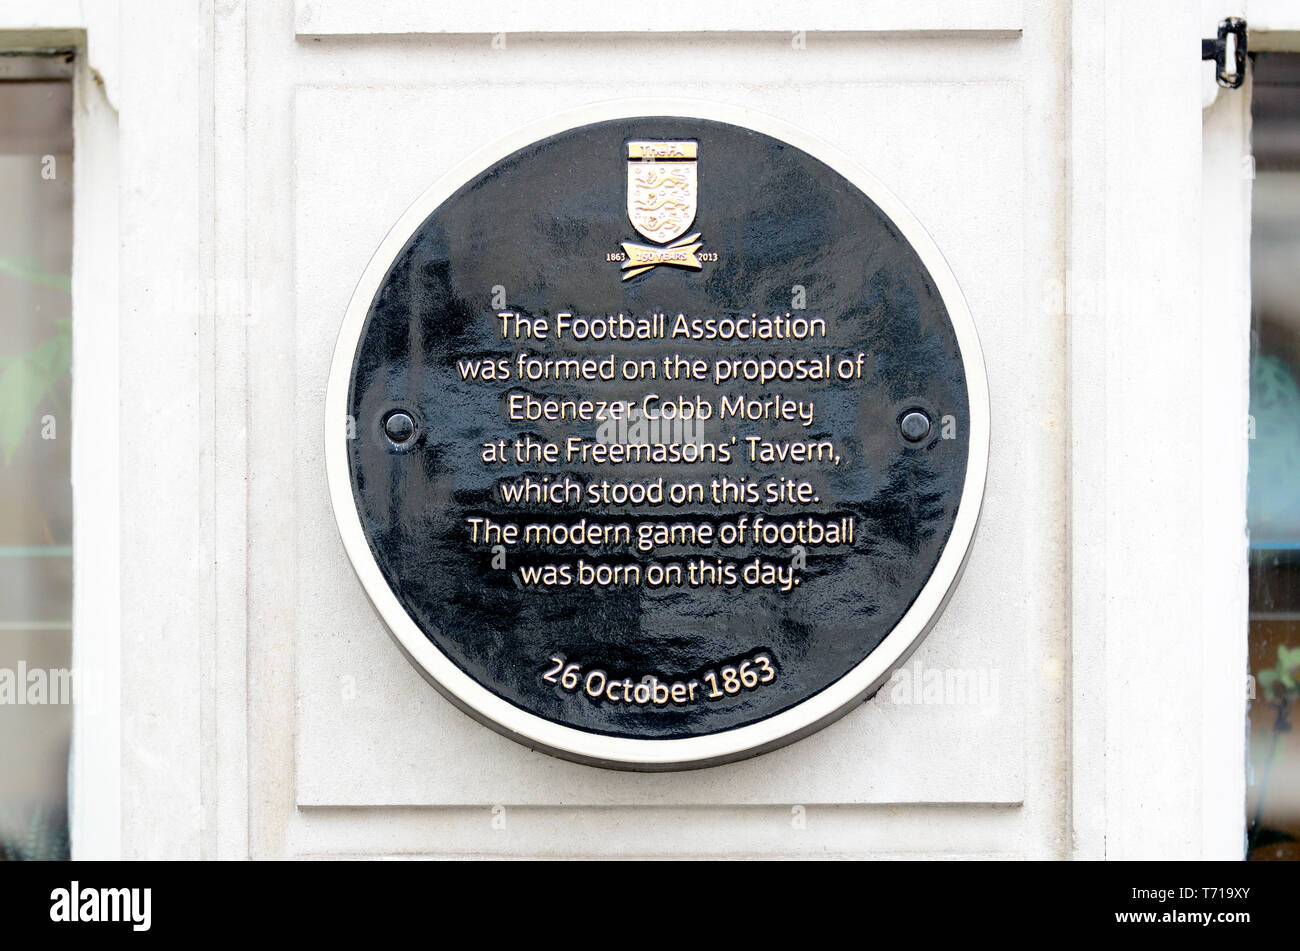 London, England, UK. Commemorative Plaque: 'The Football Association was formed on the proposal of Ebenezer Cobb Morley at the Freemasons' Tavern, whi - Stock Image